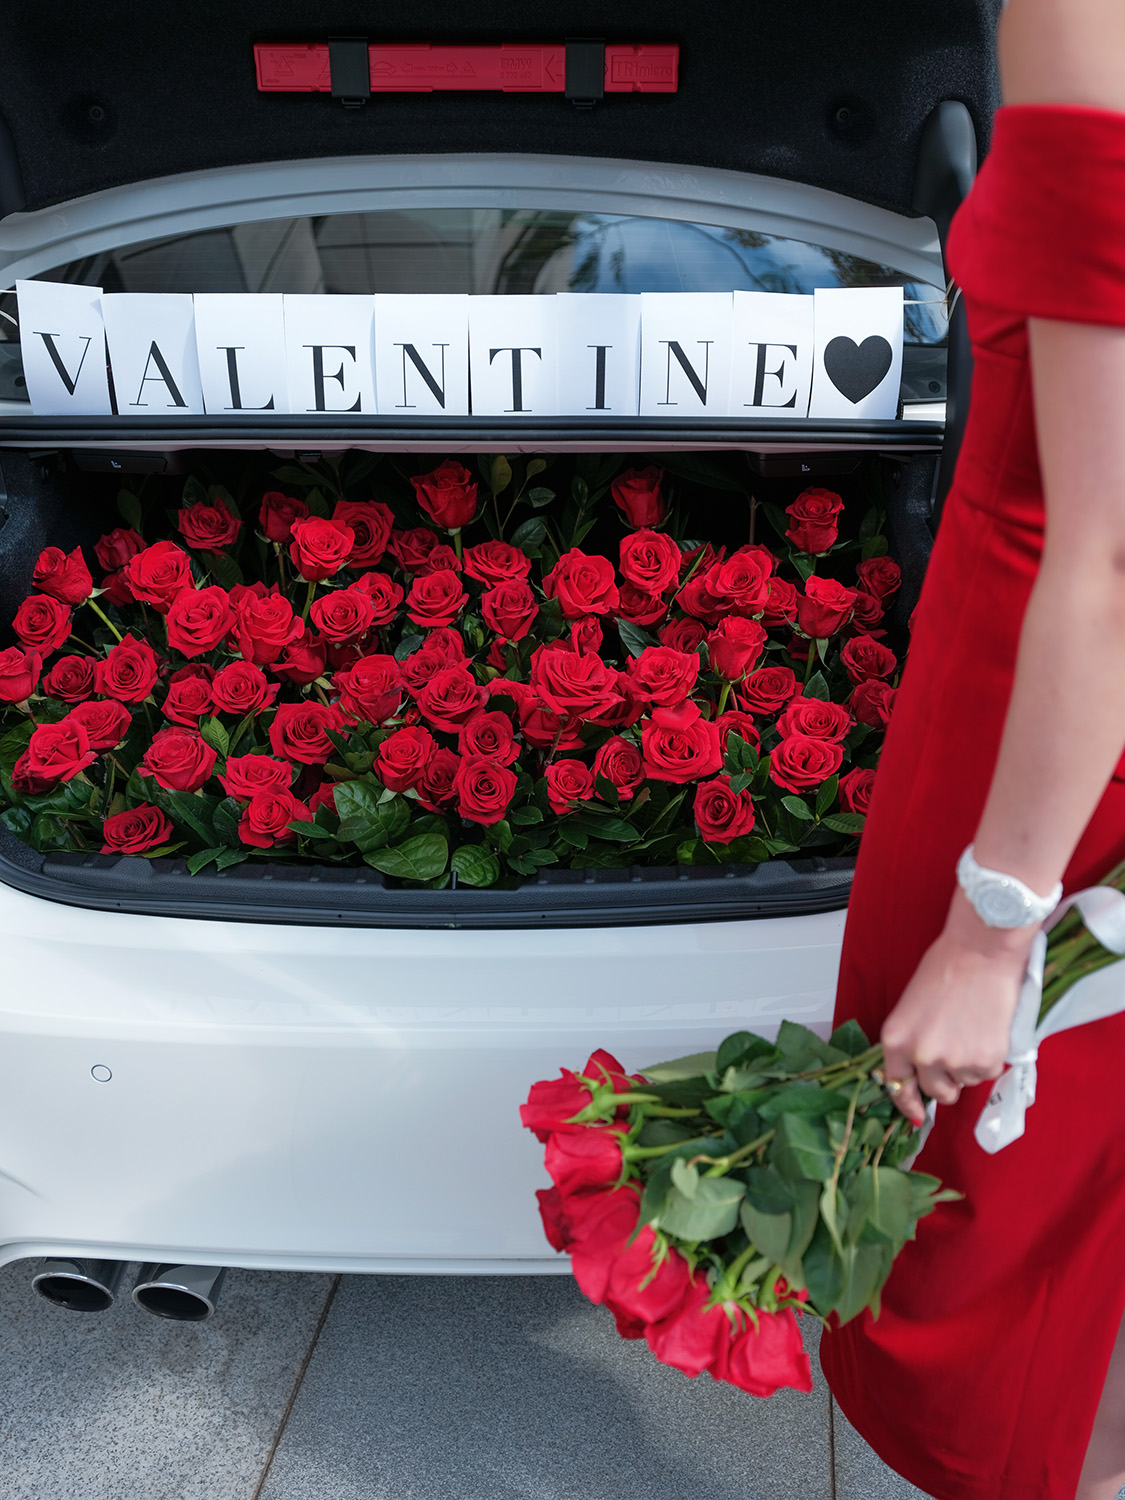 9 Days of Valentine – Day 3: Take A Road Trip   Of Leather and Lace - Fashion & Travel Blog by Tina Lee   valentines date ideas, valentines day decor, red roses, car trunk red roses